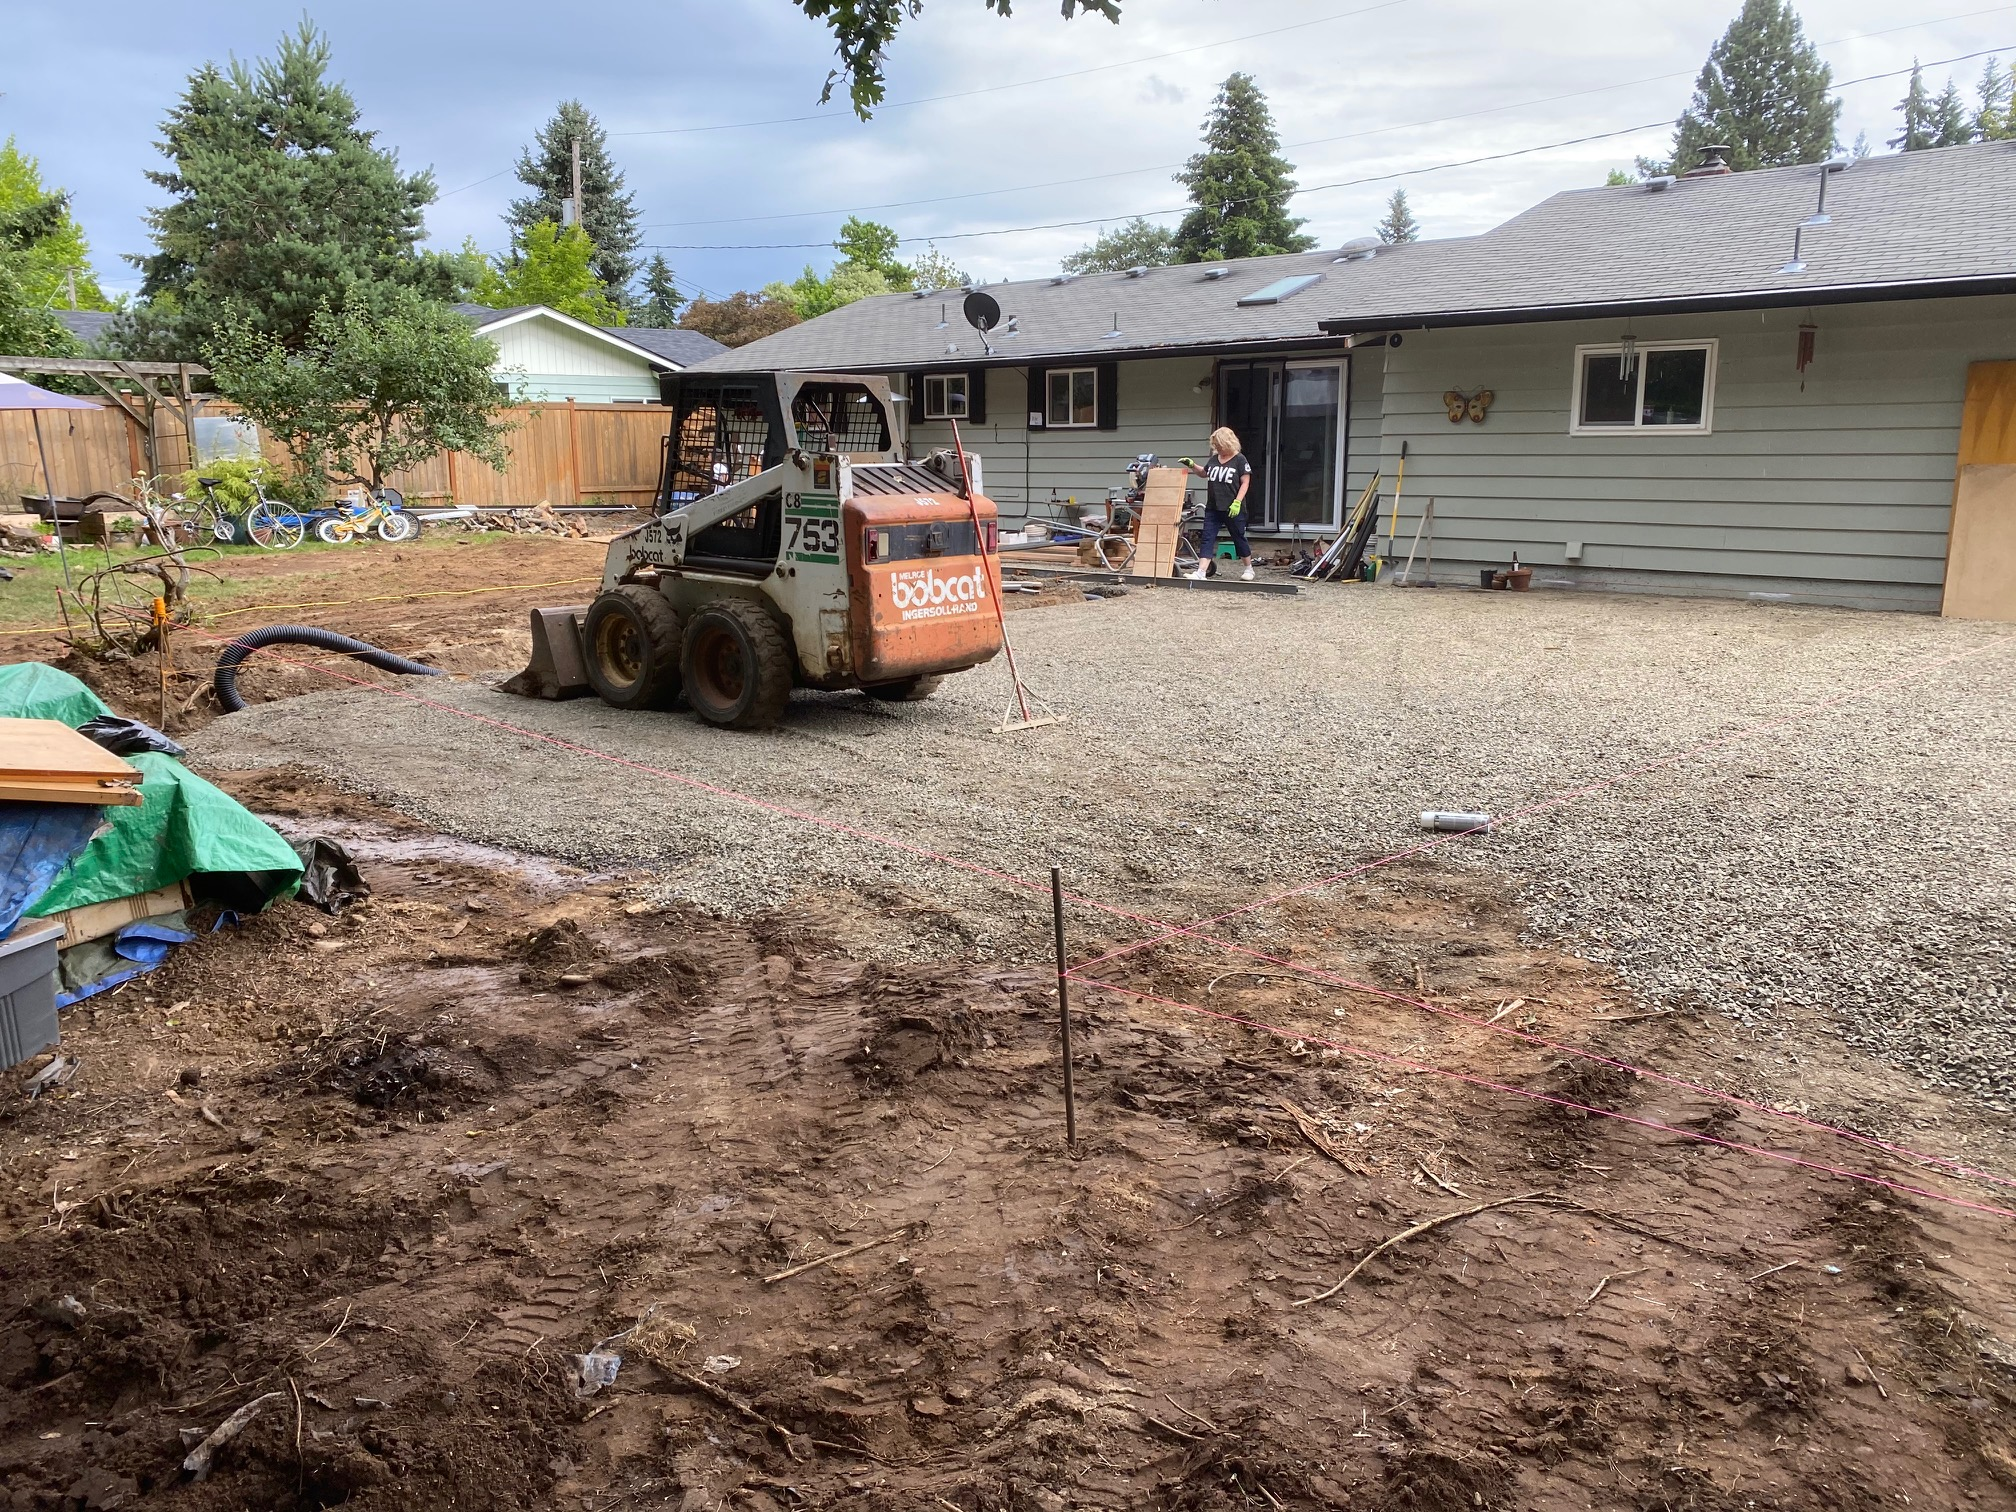 putting in the hard work using a Bobcat to flatten the gravel before a concrete pour